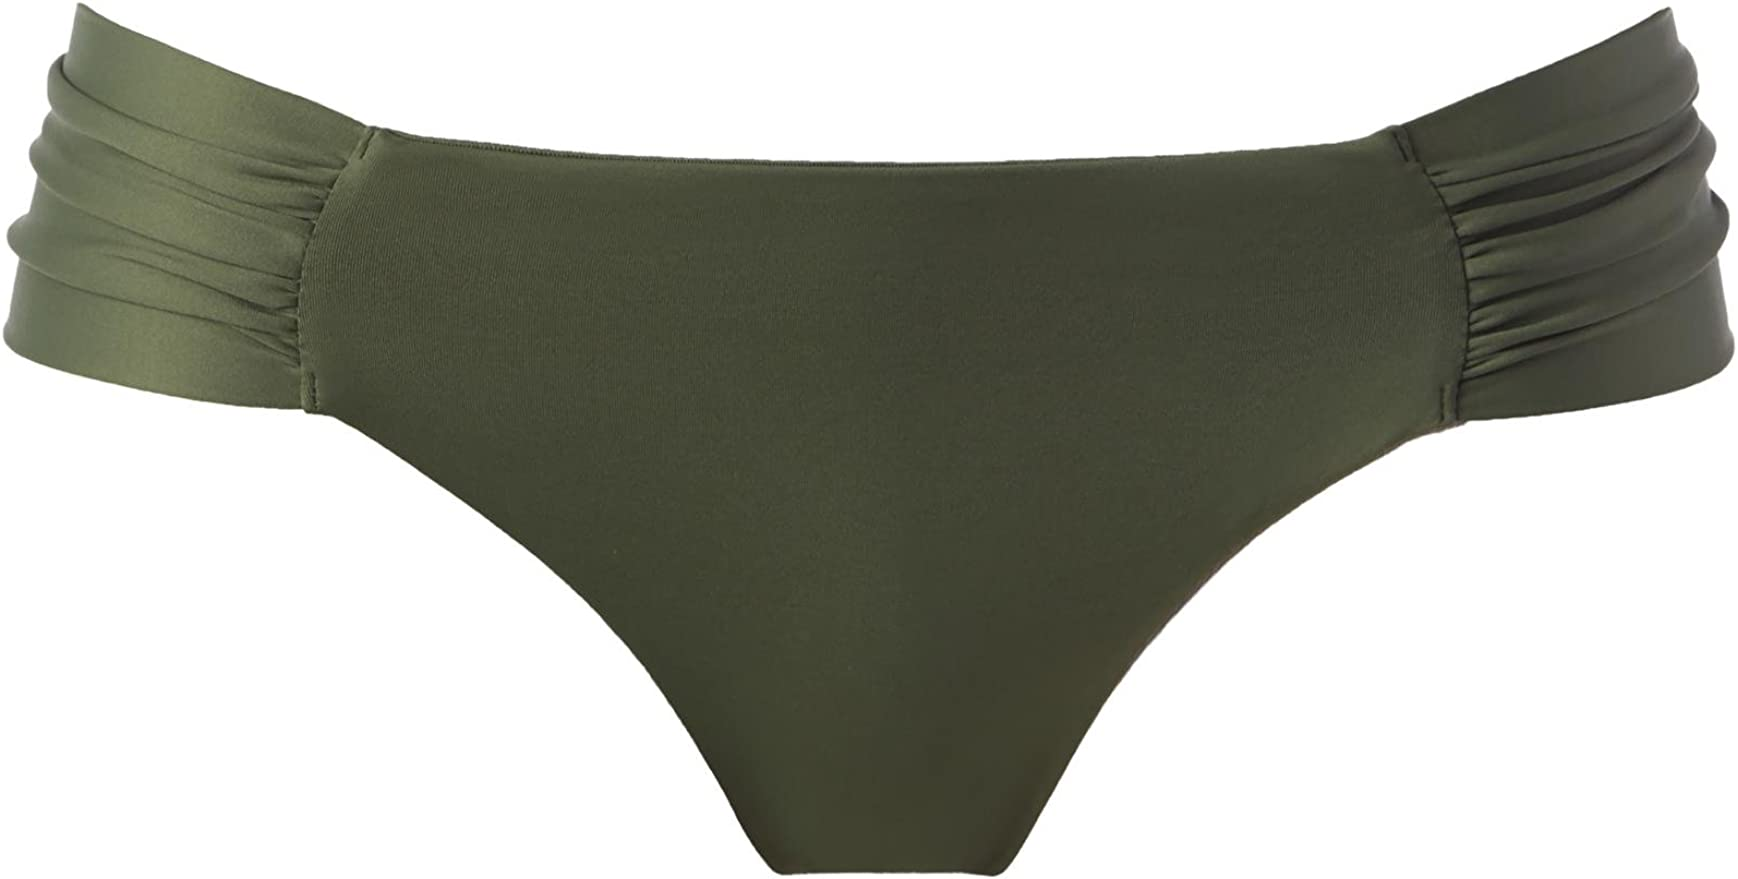 CALZEDONIA Femme Culotte Br/ésilienne Fronce Indonesia